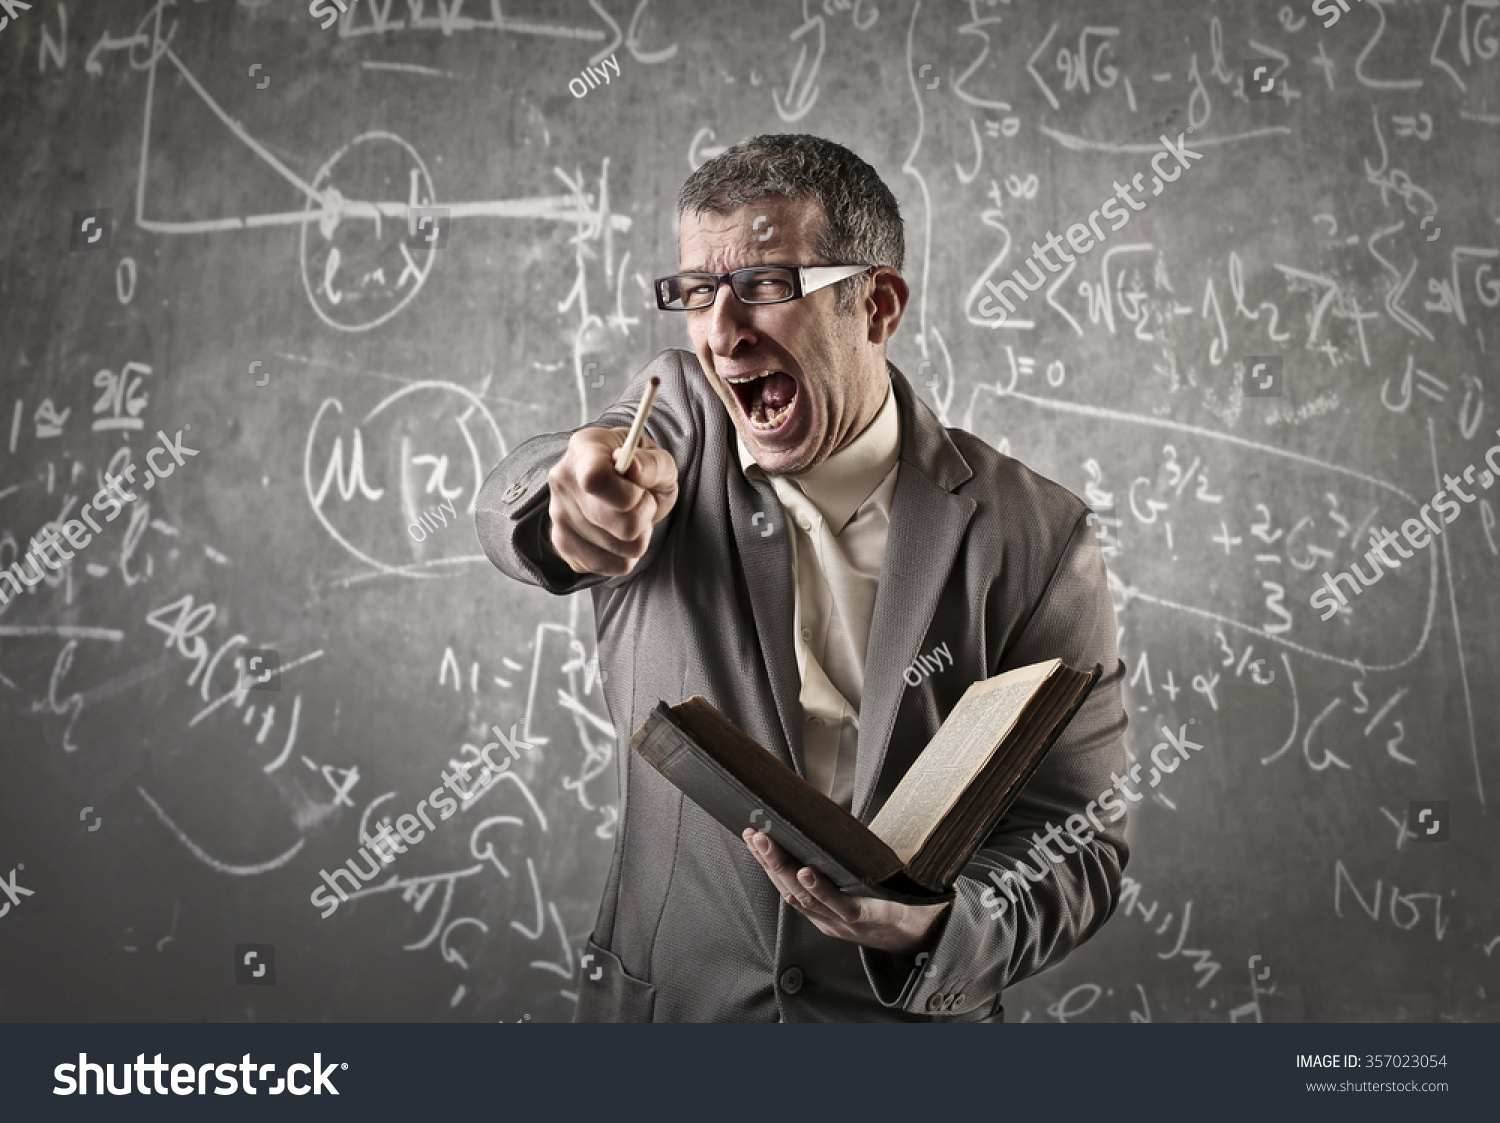 stock-photo-screaming-teacher-357023054